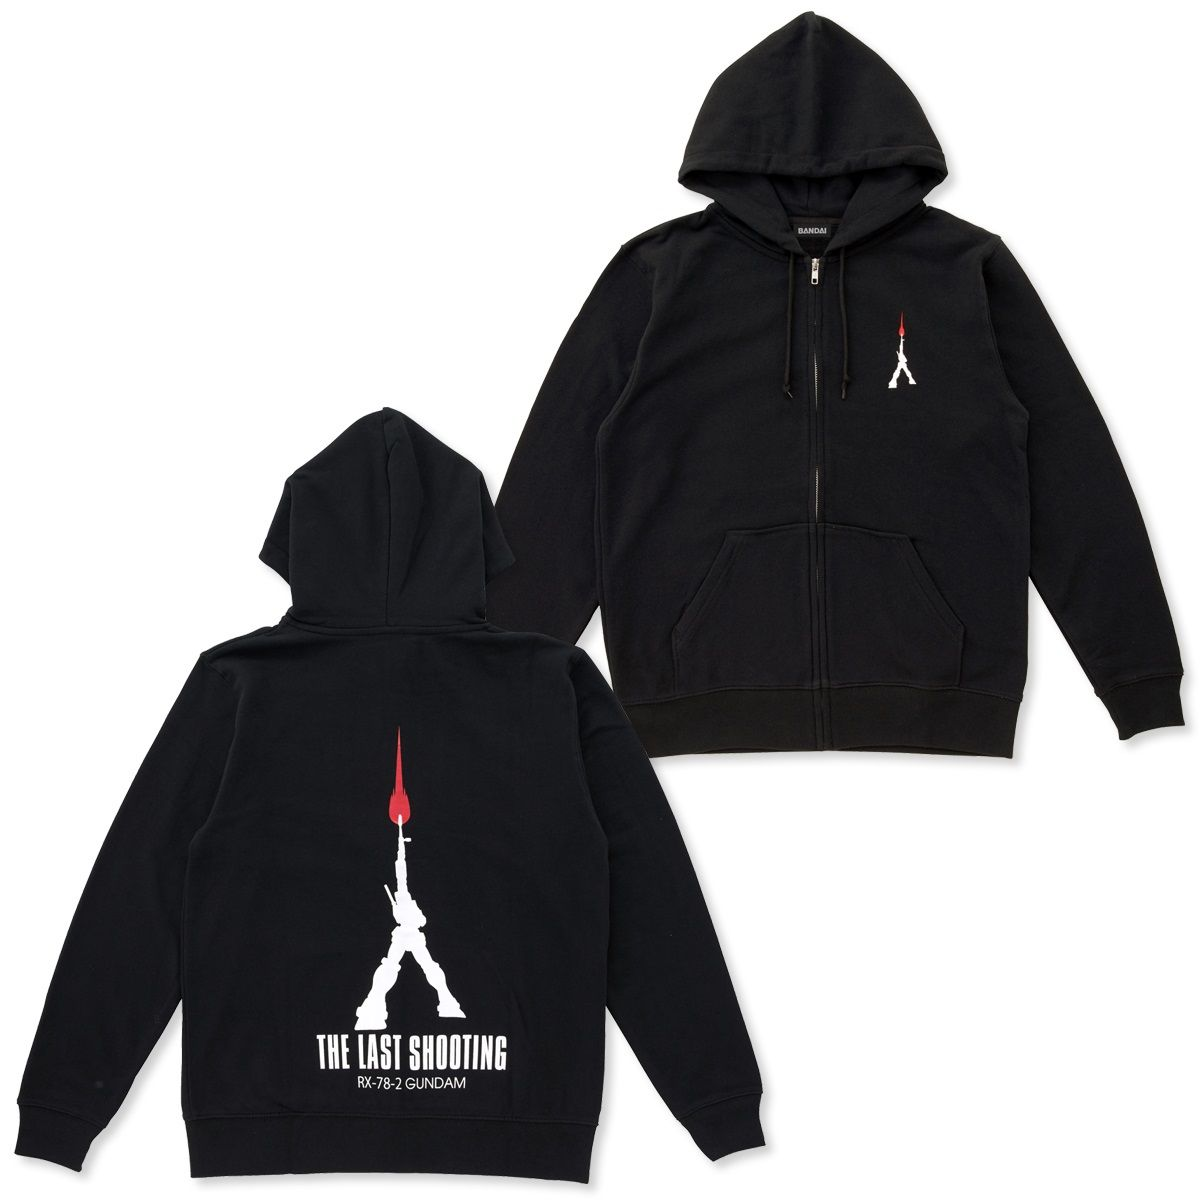 Mobile Suit Gundam The Last Shooting Hoodie